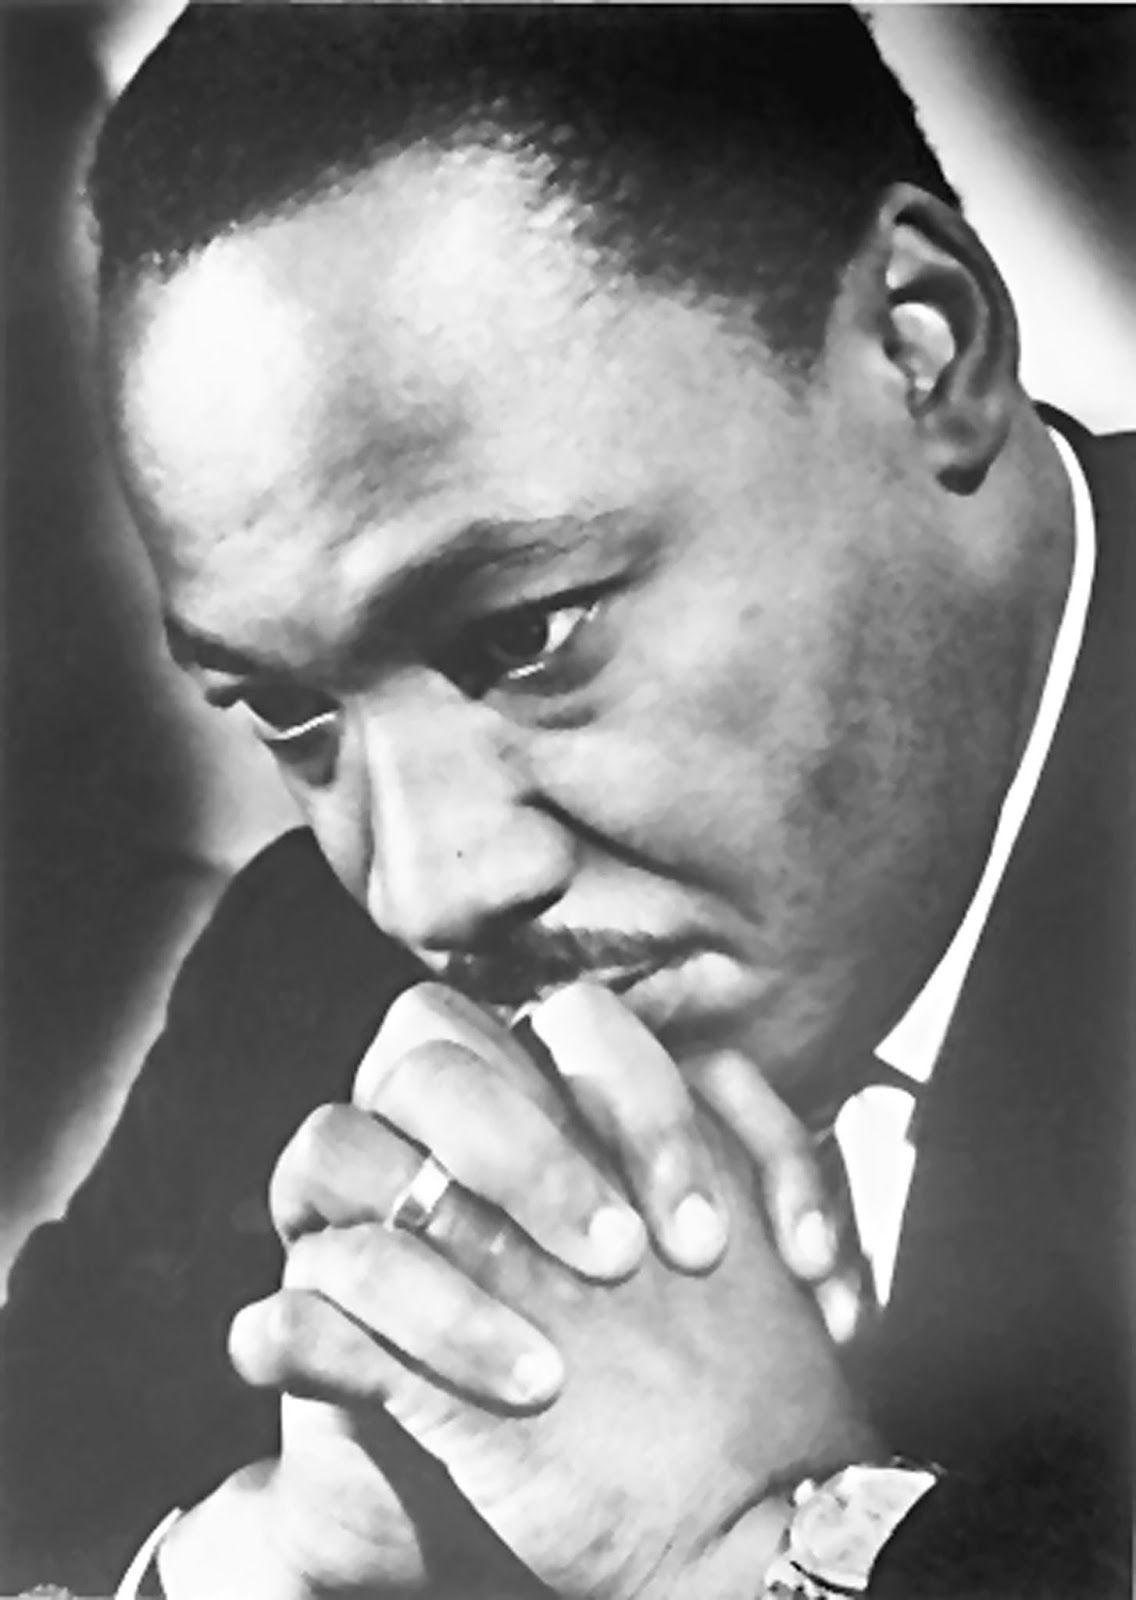 Martin Luther King, Jr. wallpapers - Celebrities- FPW